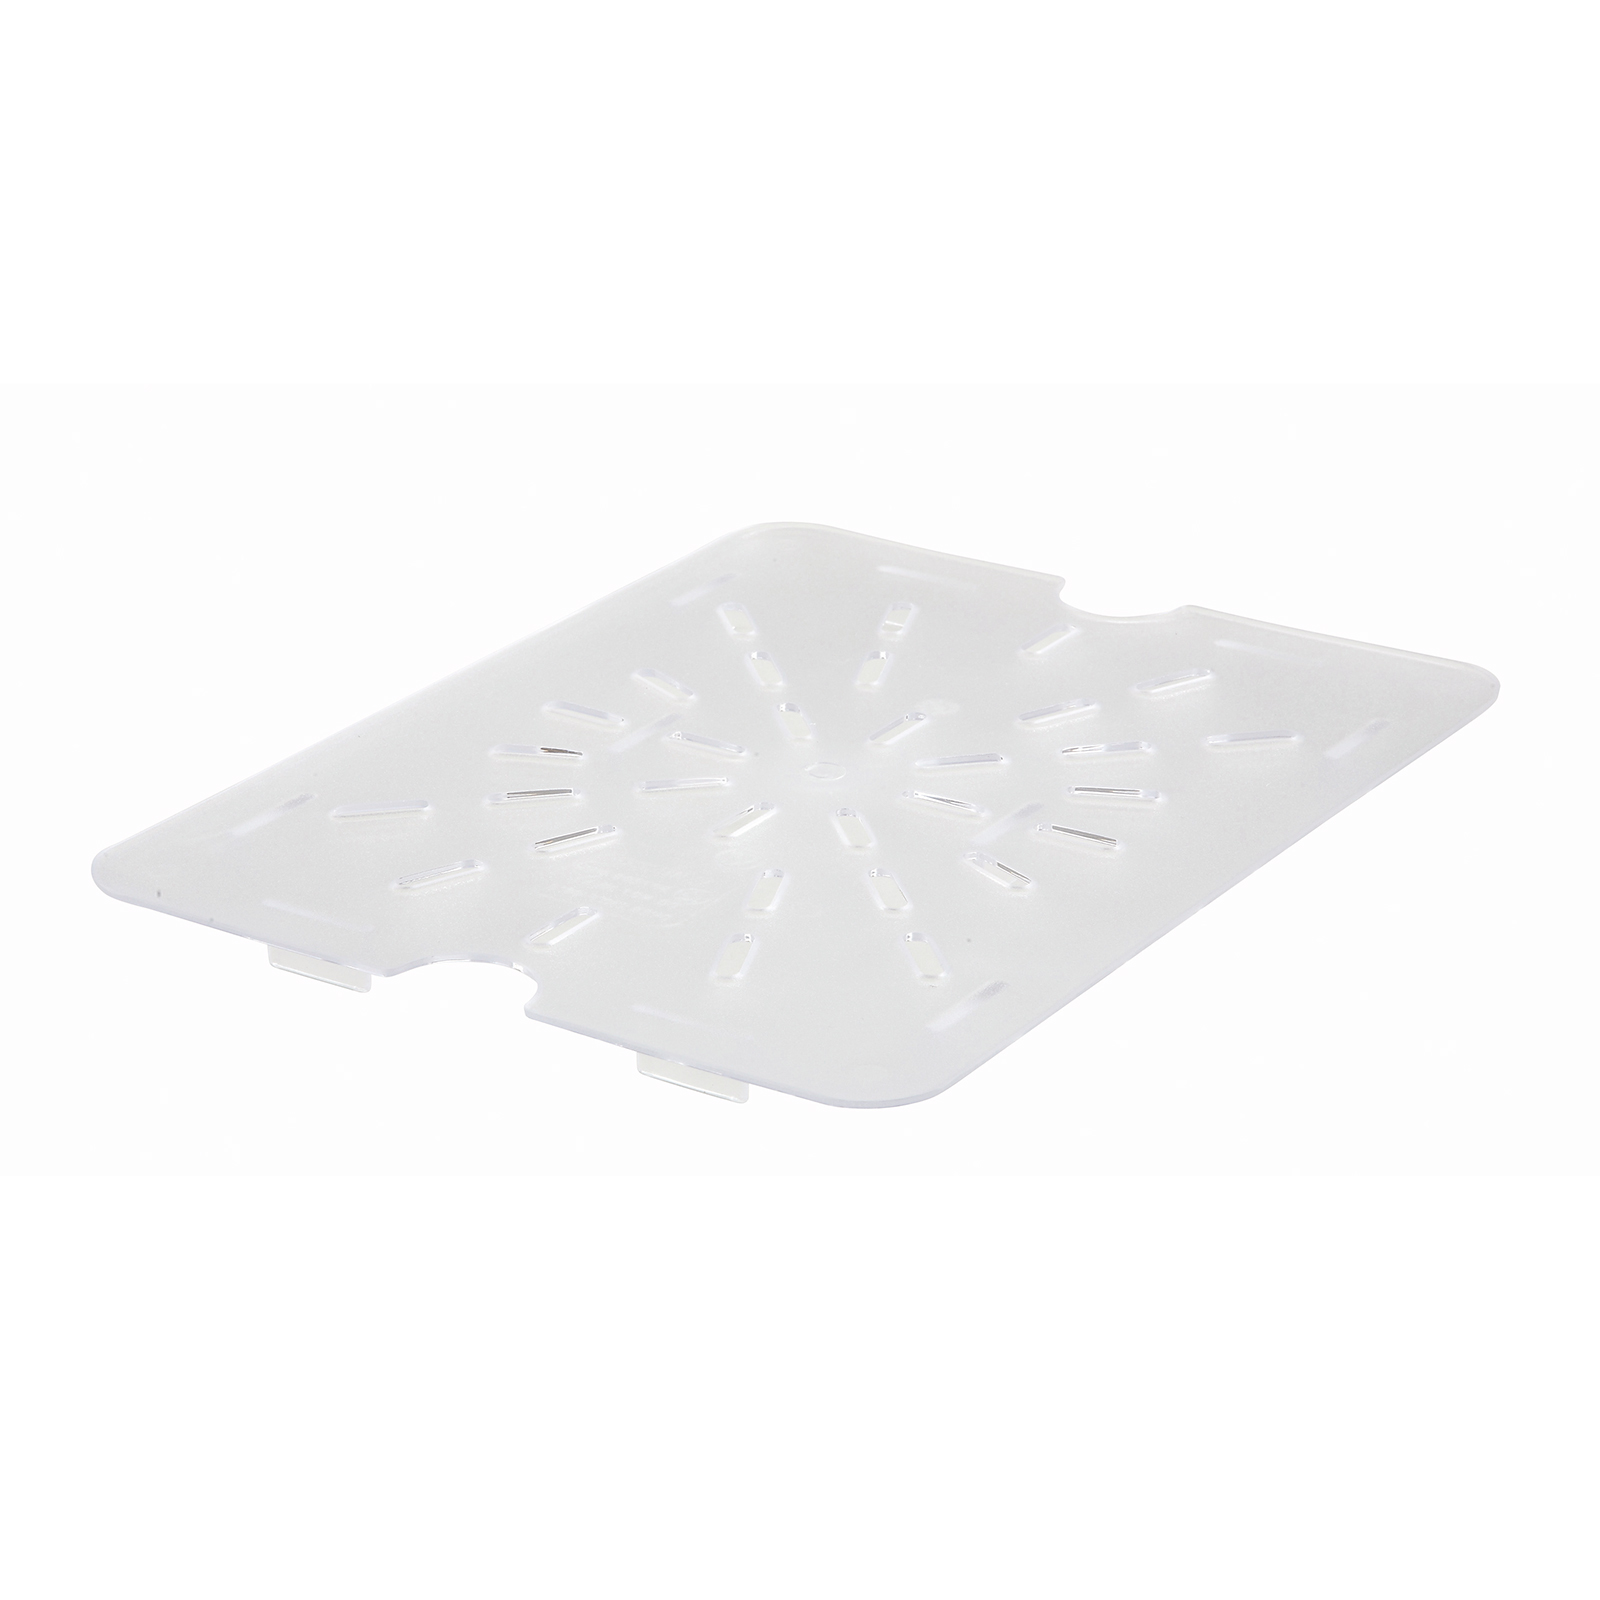 Winco SP72DS food pan drain tray